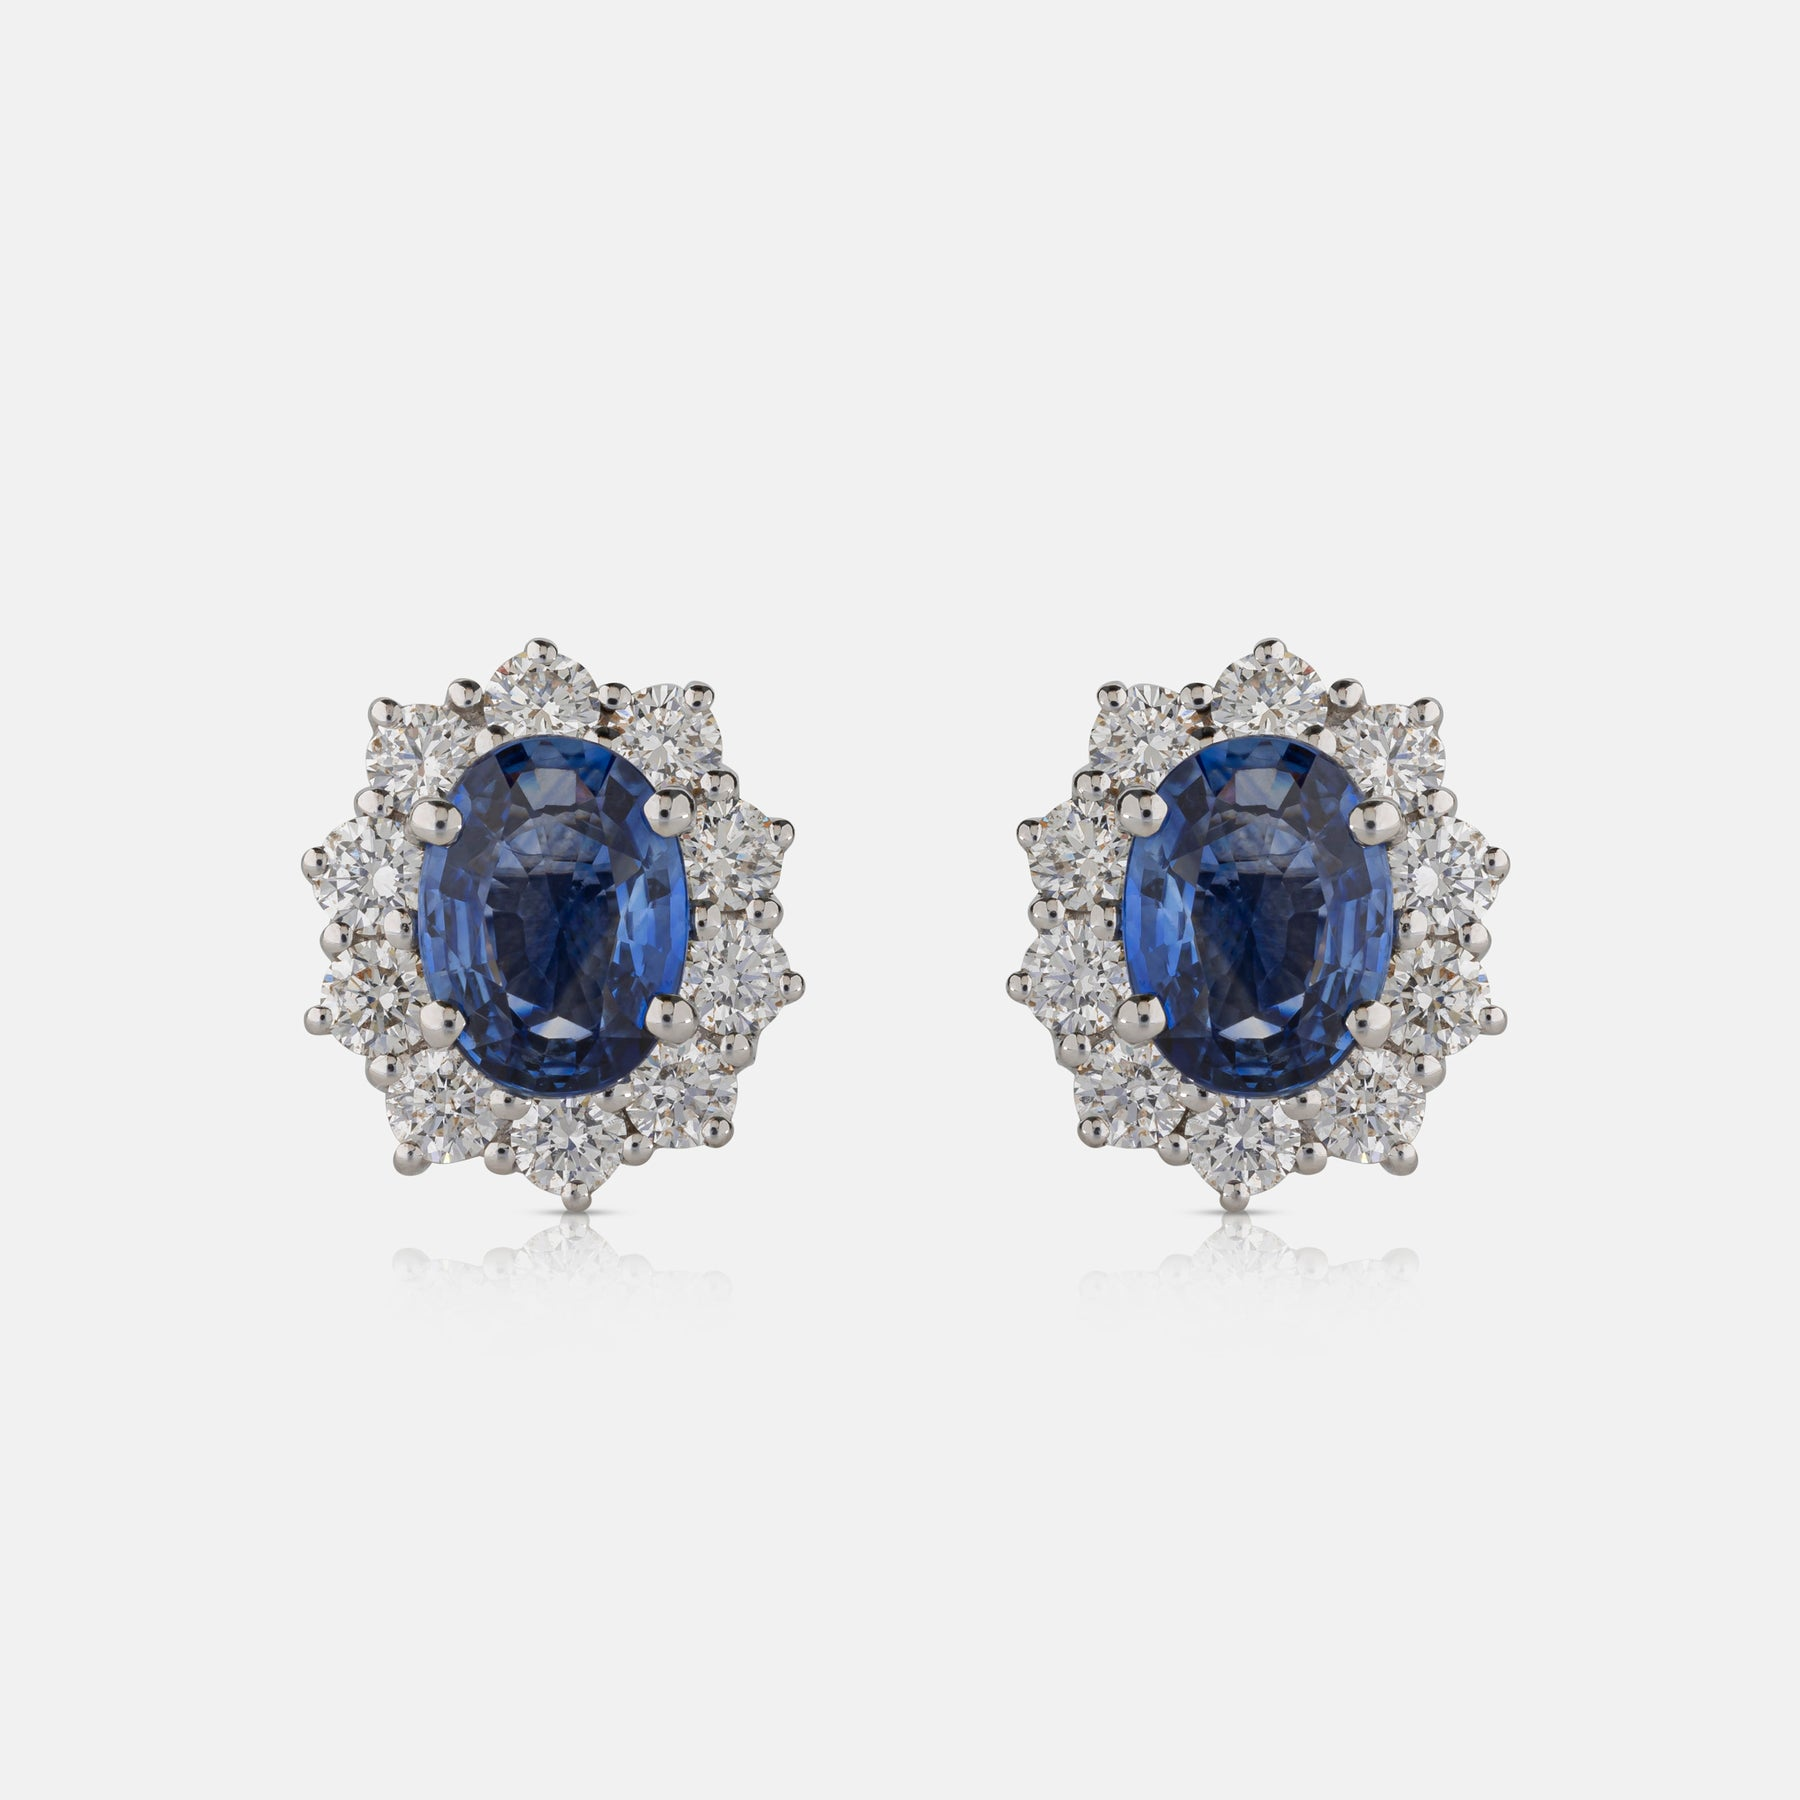 Oval Sapphire Stone,<br> Diamond Cluster Earring,<br> 18ct White Gold